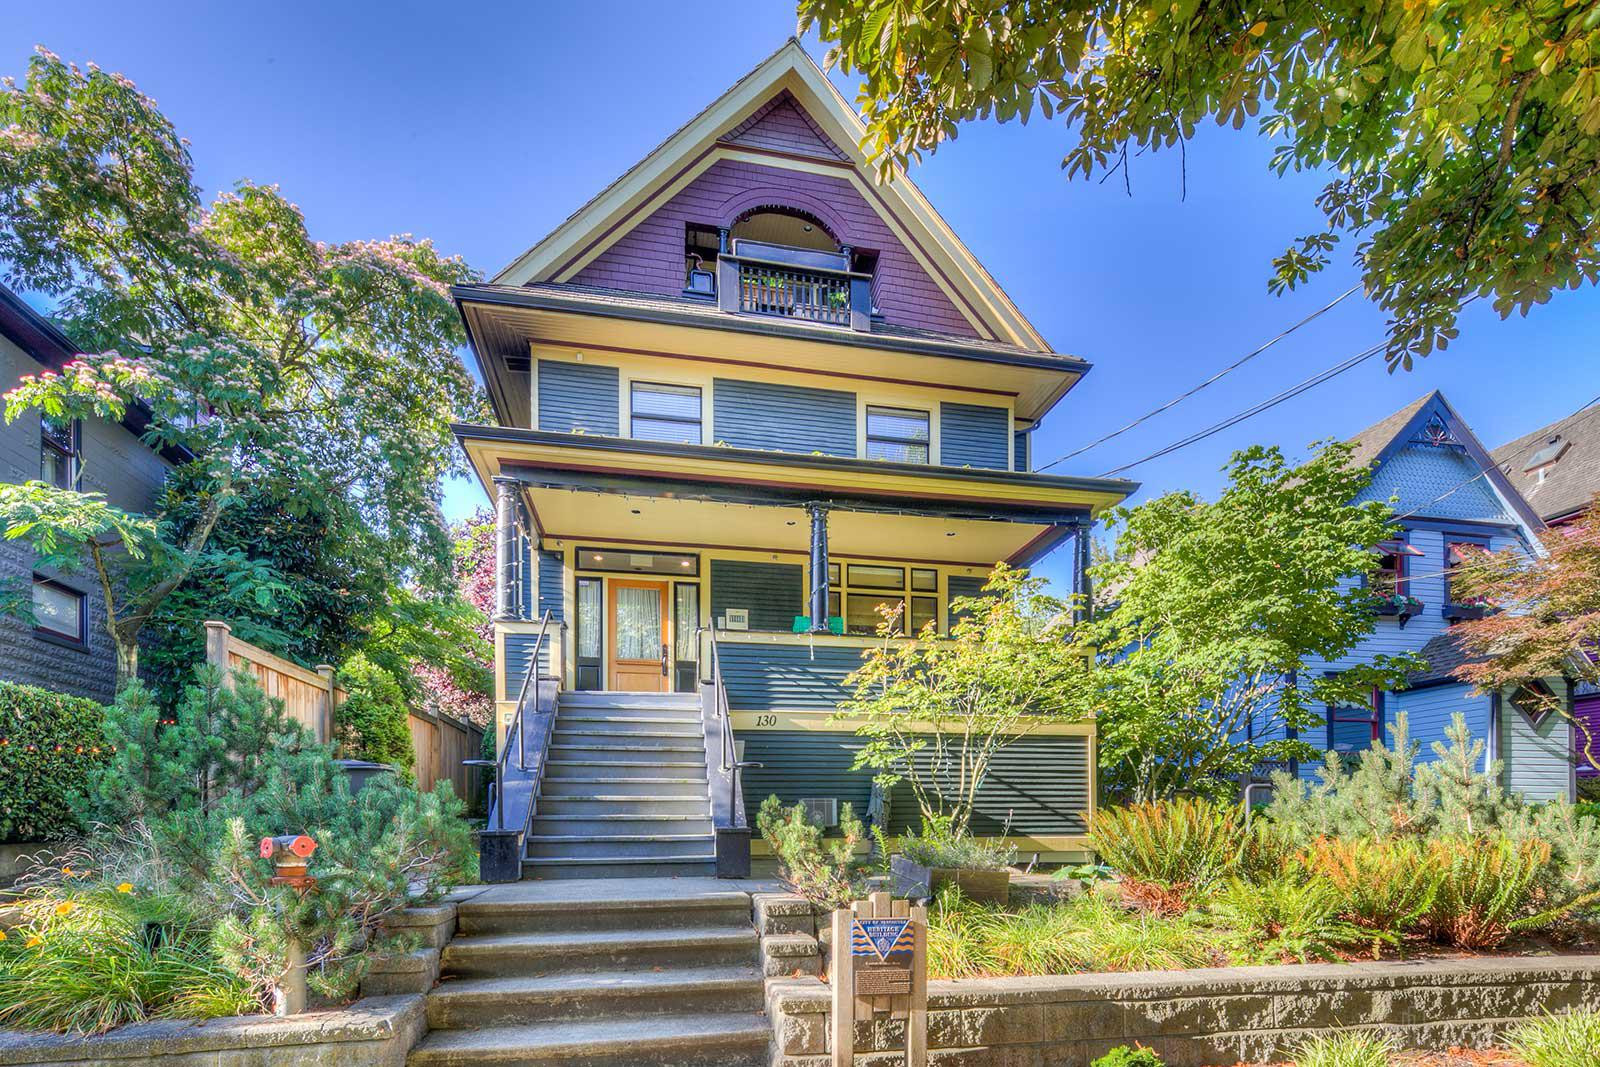 Macauley House at 130 W 10th Ave, Vancouver 0